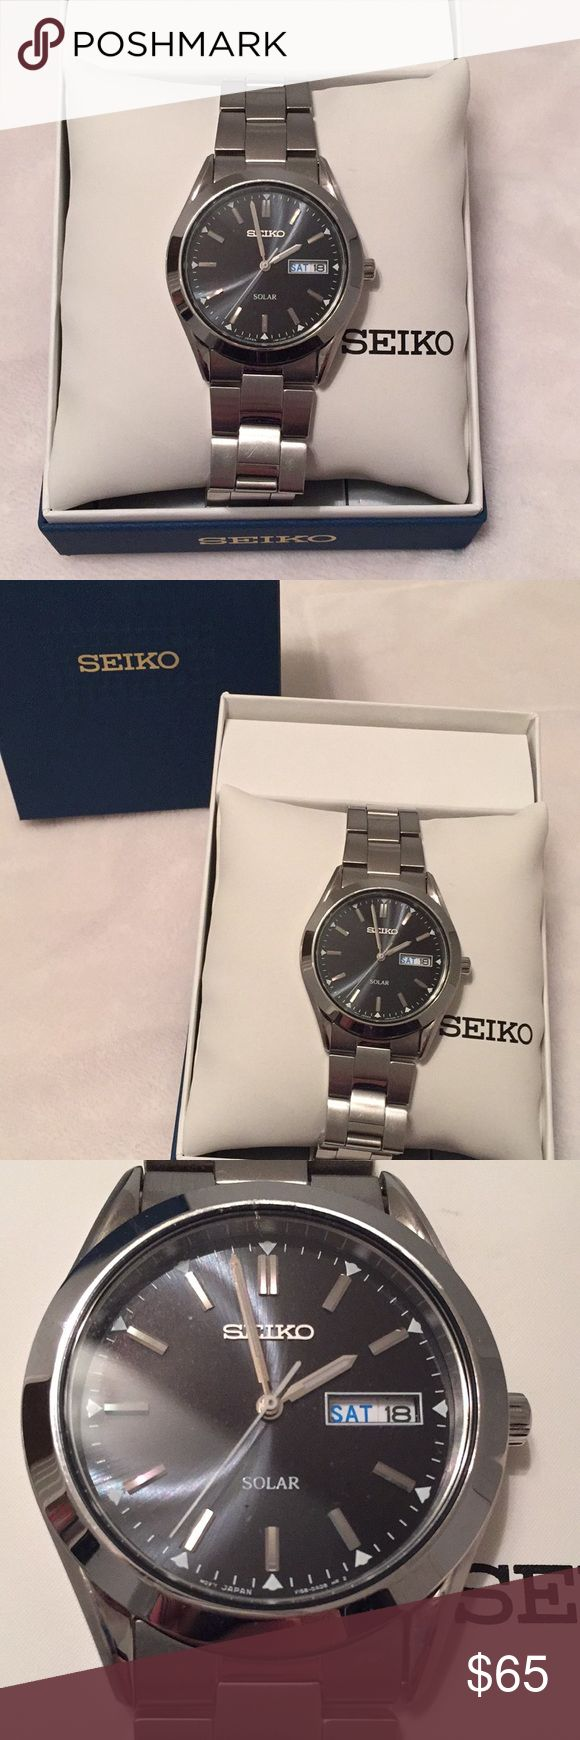 Men's Seiko Solar Watch Classic timepiece that requires no battery change. Watch operates on solar. Original links maintained and box kept for storage. Midnight blue face, water resistant, stainless steal. Seiko Accessories Watches